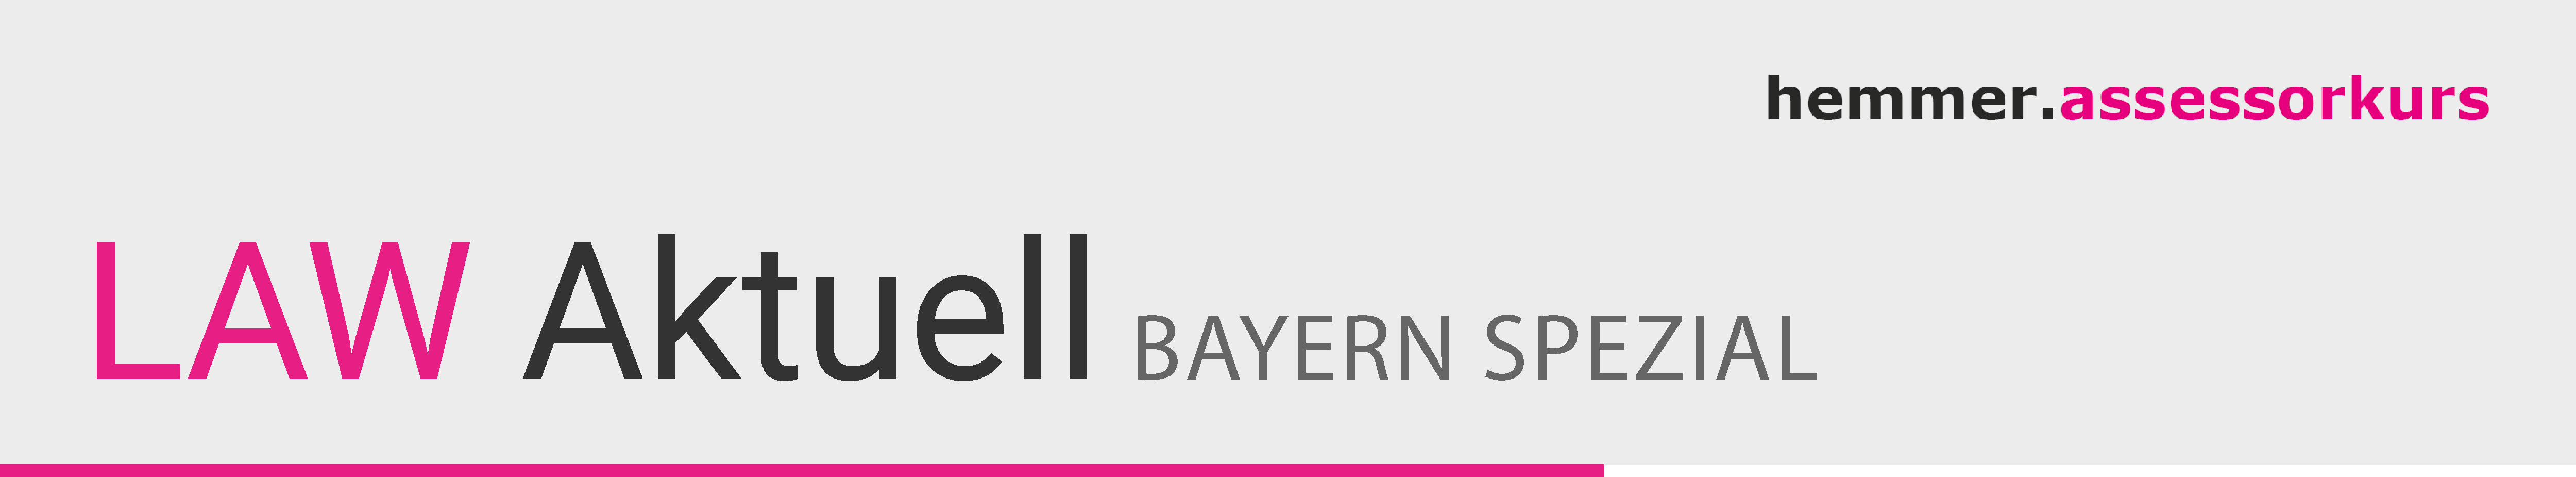 LAW Aktuell Bayern Spezial Assessor